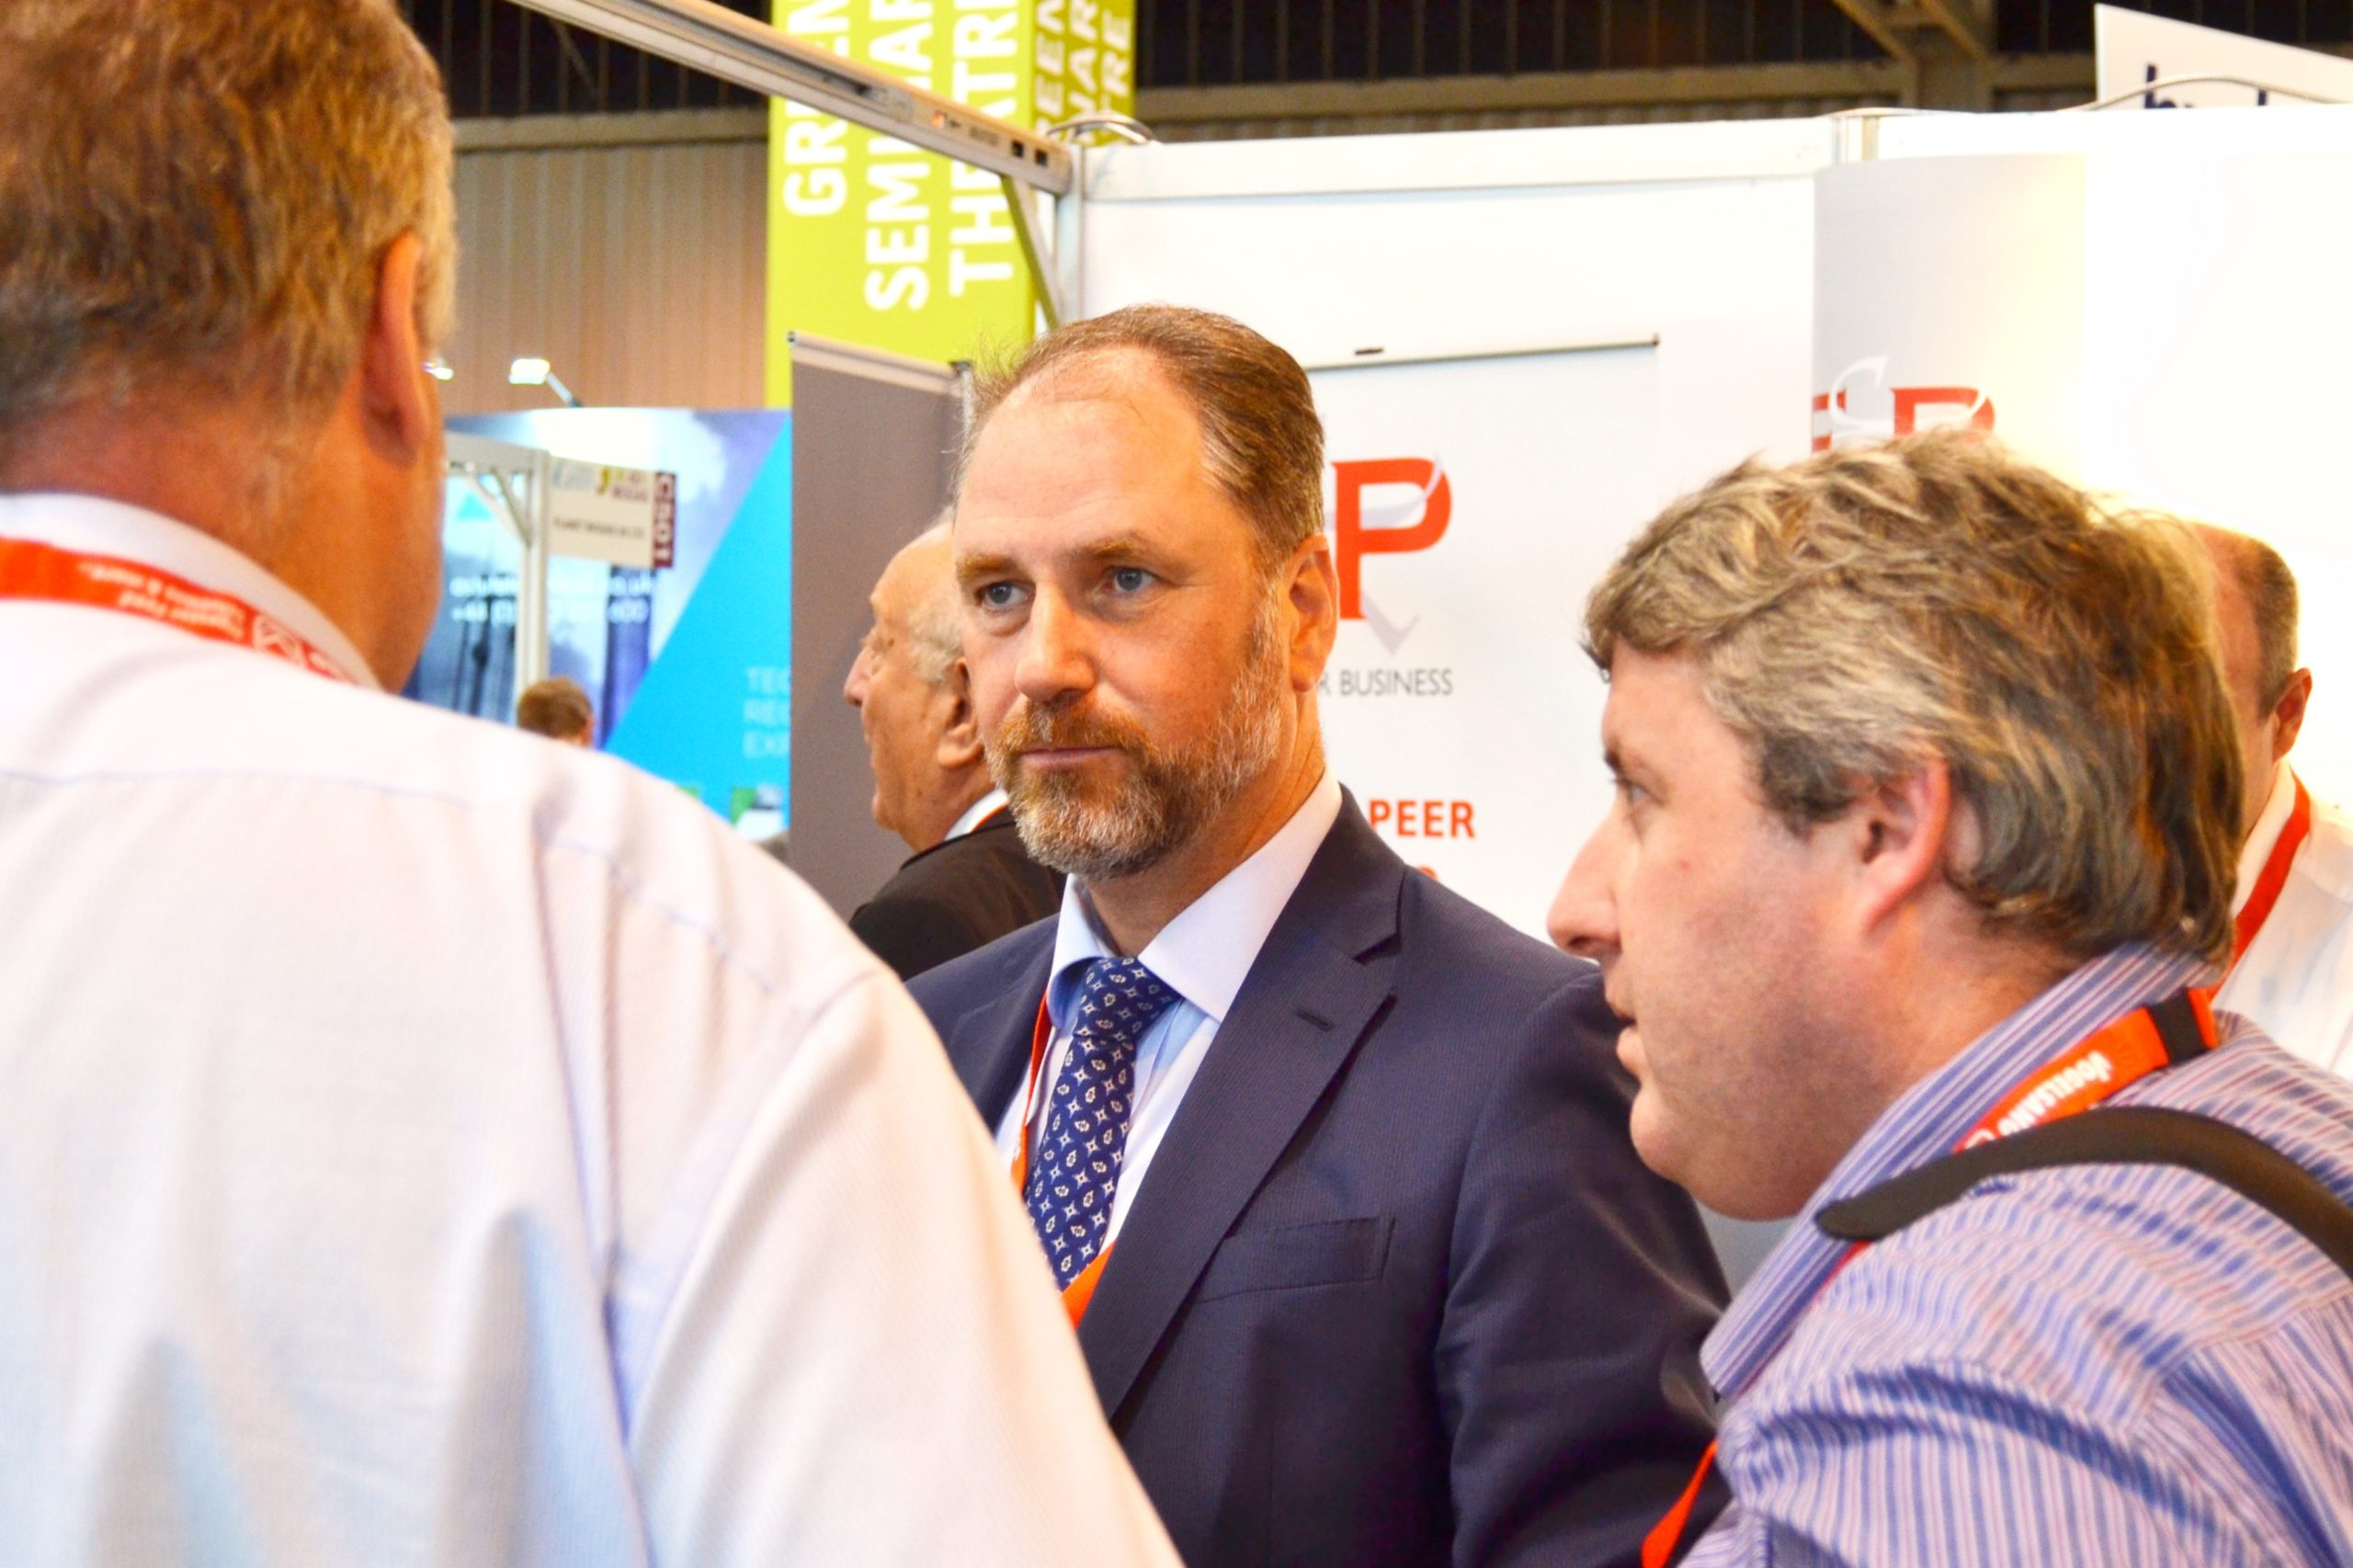 MEMBER'S PRESS RELEASE: F&P Reports 'significant Interest' At AD And Biogas Exhibition